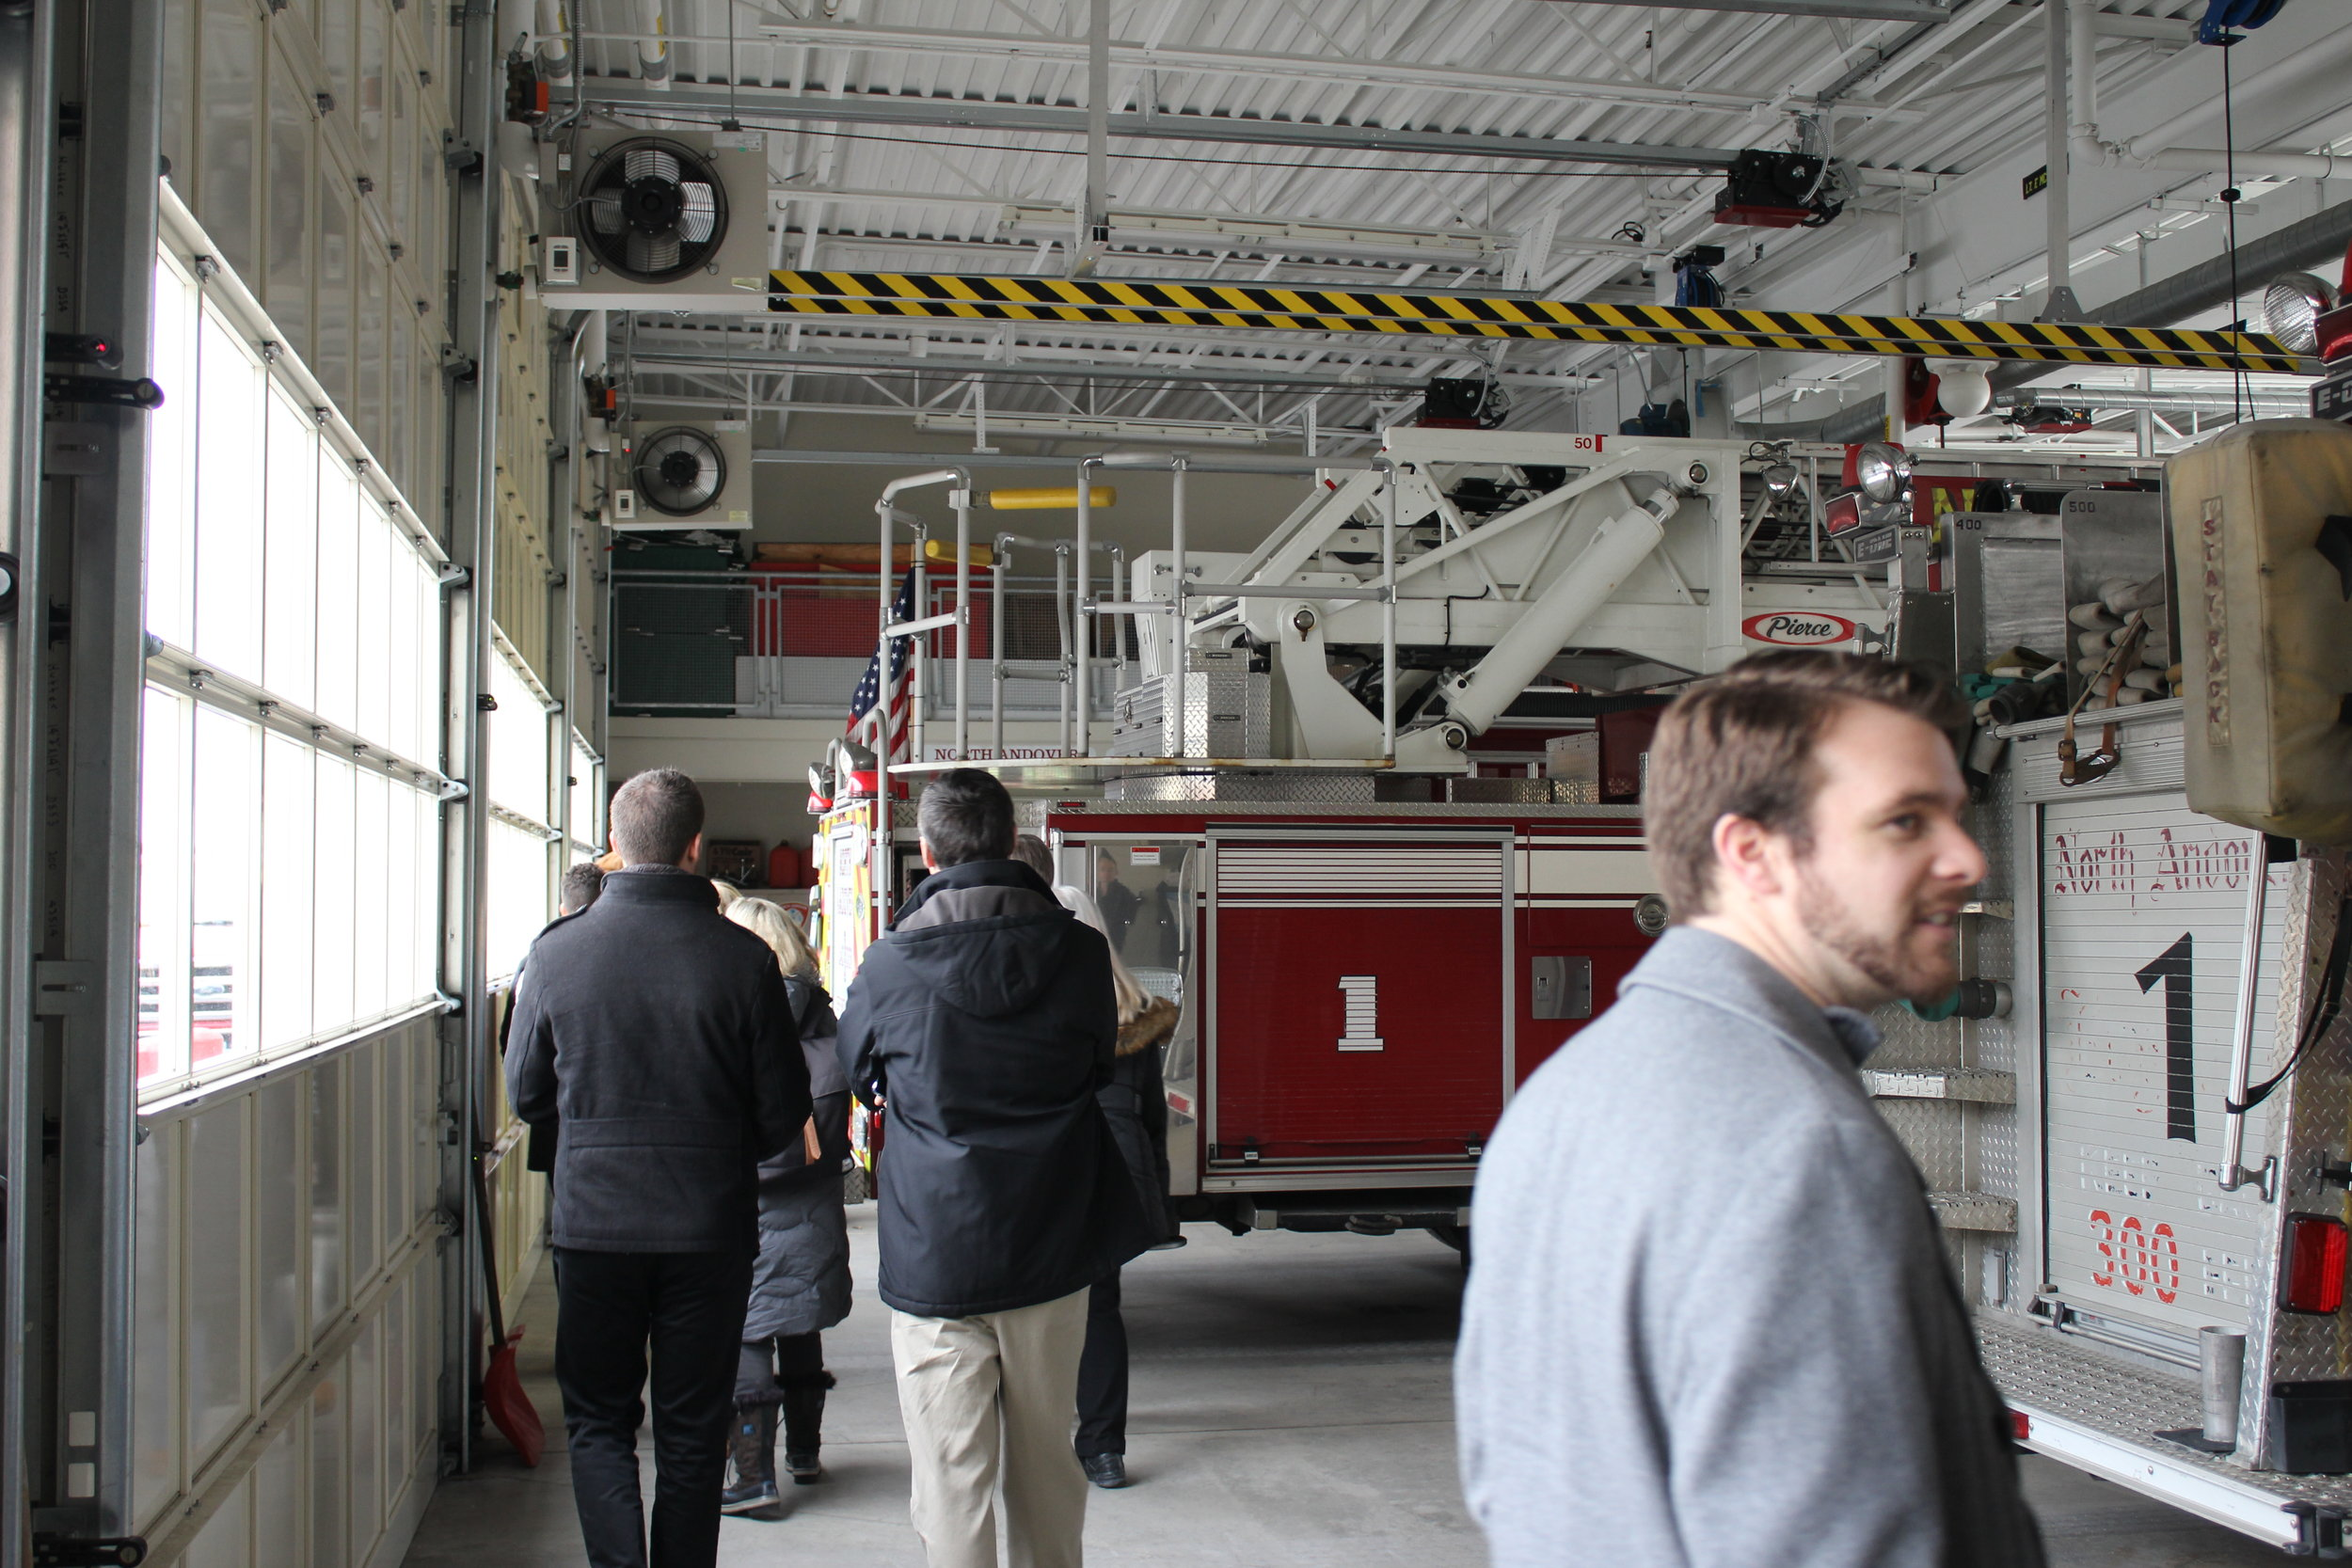 Inside the apparatus bay at north andover central fire station